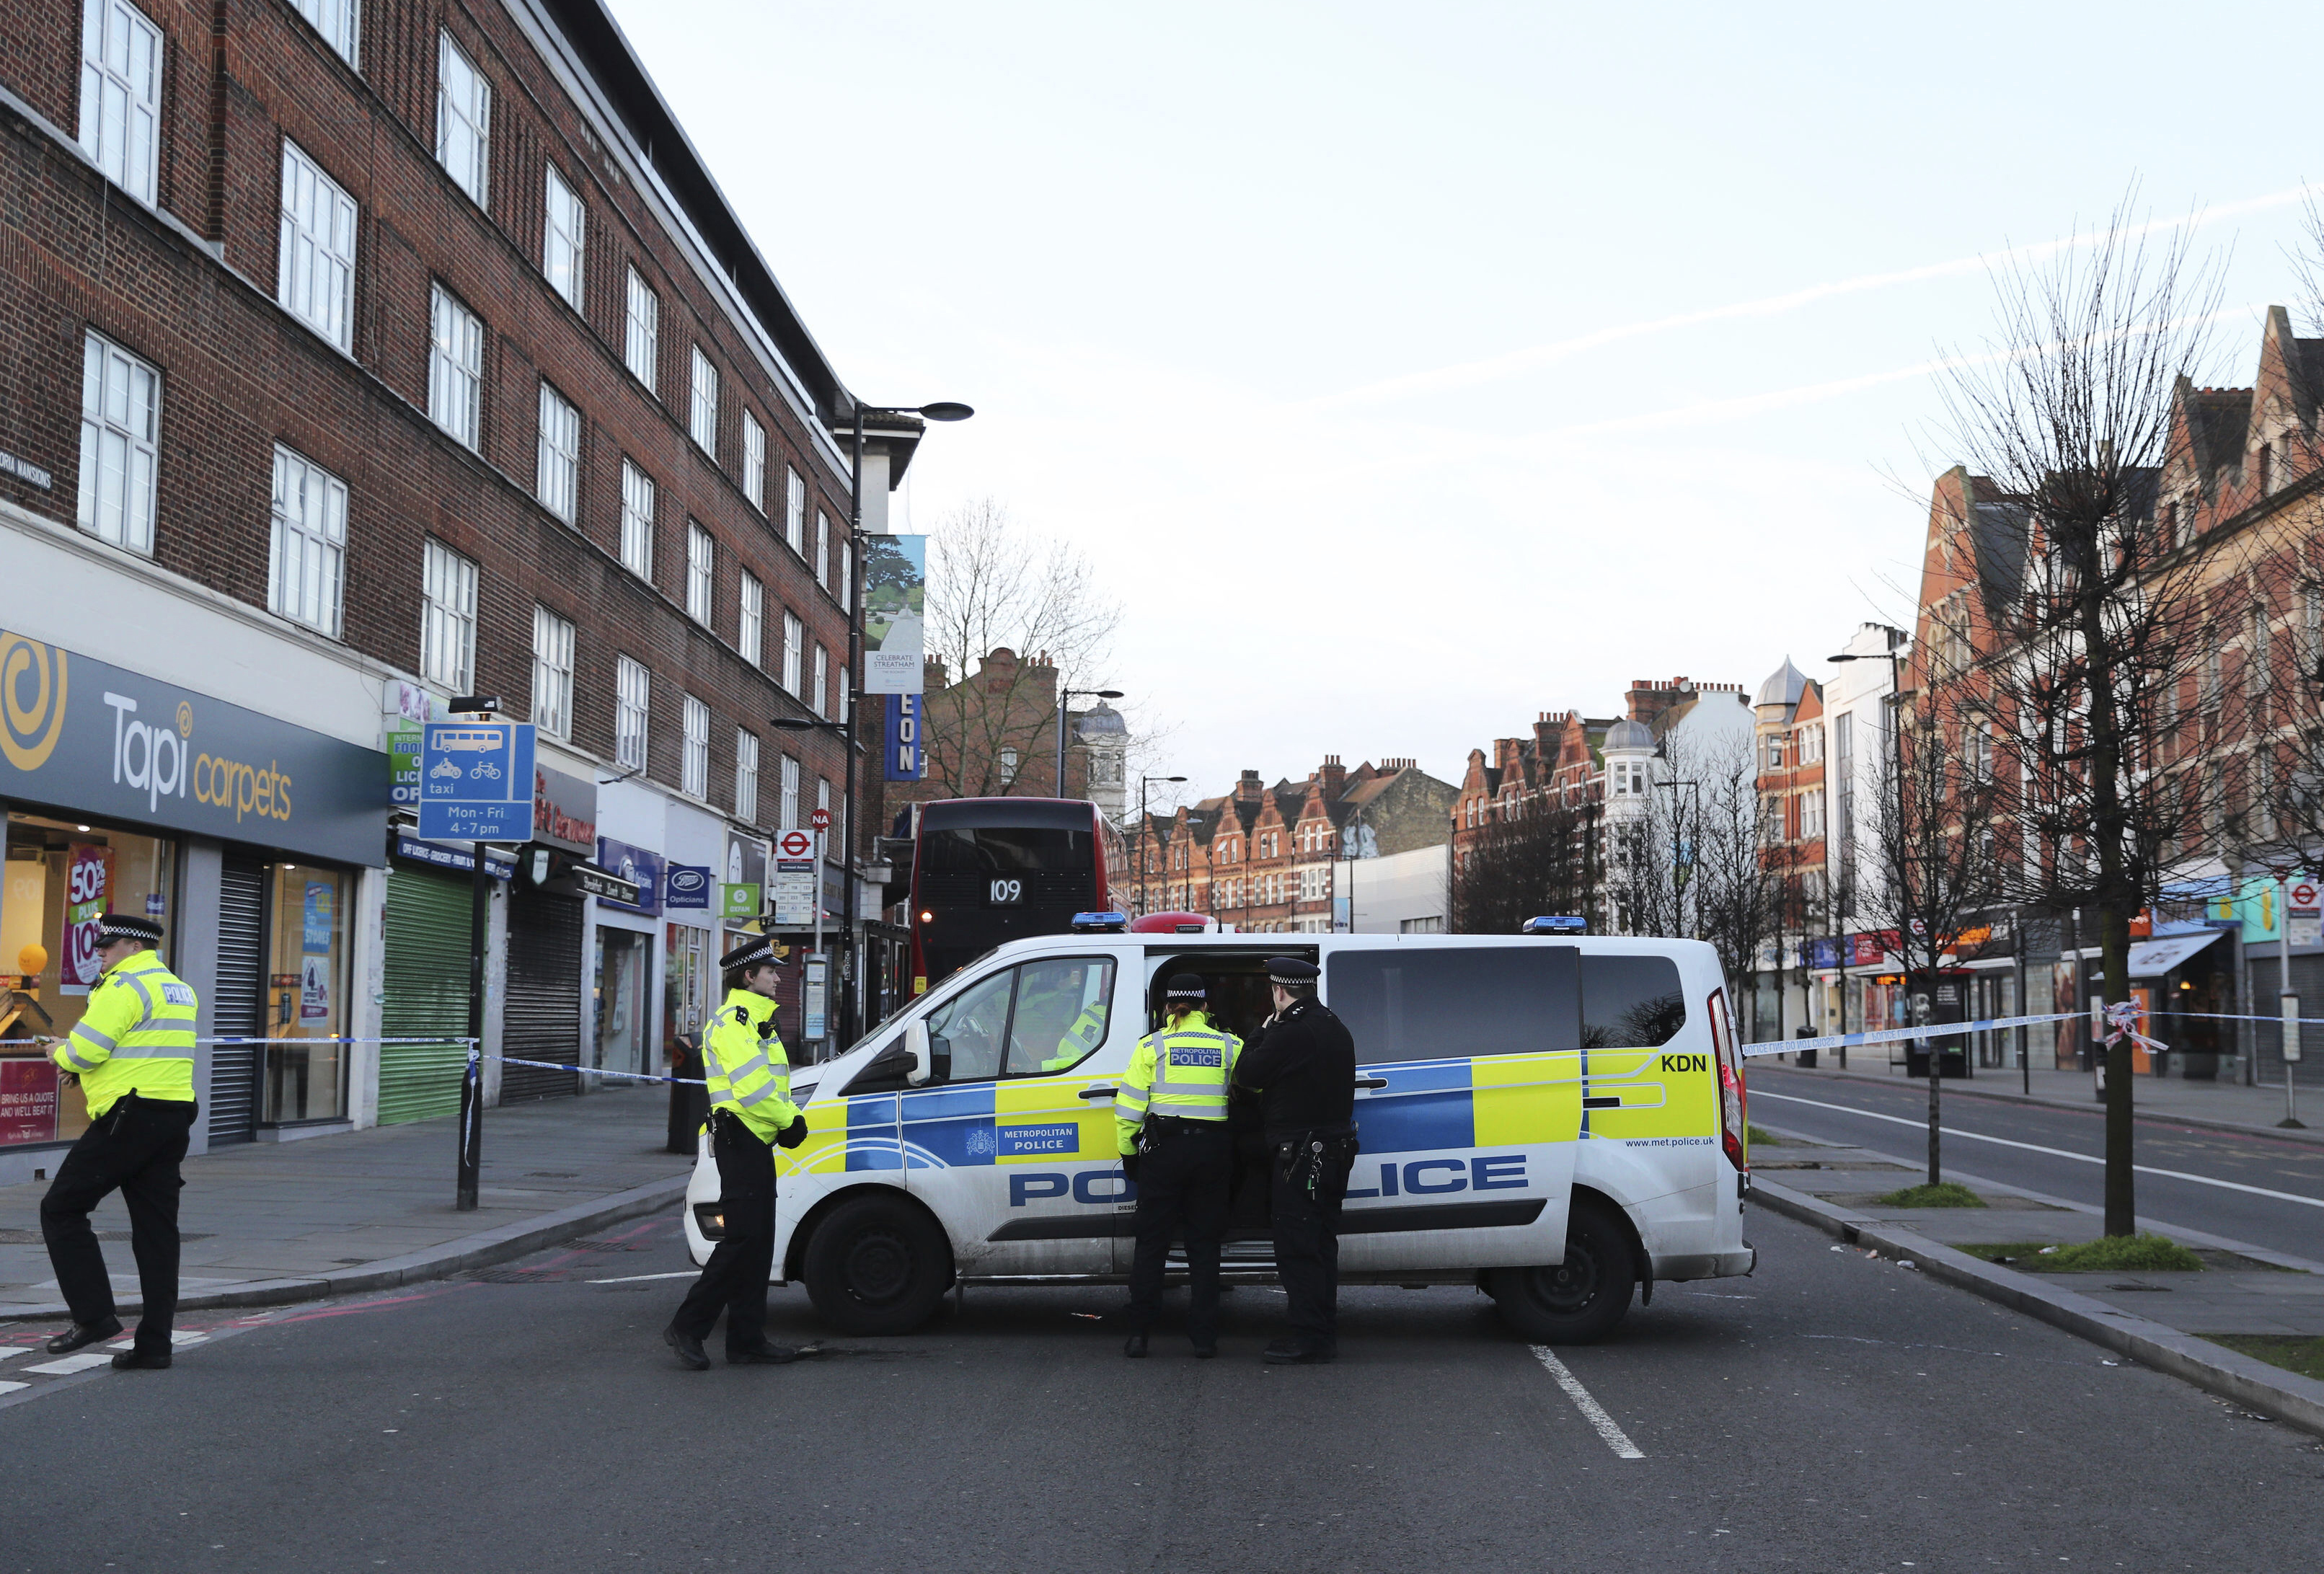 Police continue to secure the scene following a terror stabbing attack in the Streatham area of south London Monday Feb. 3, 2020.